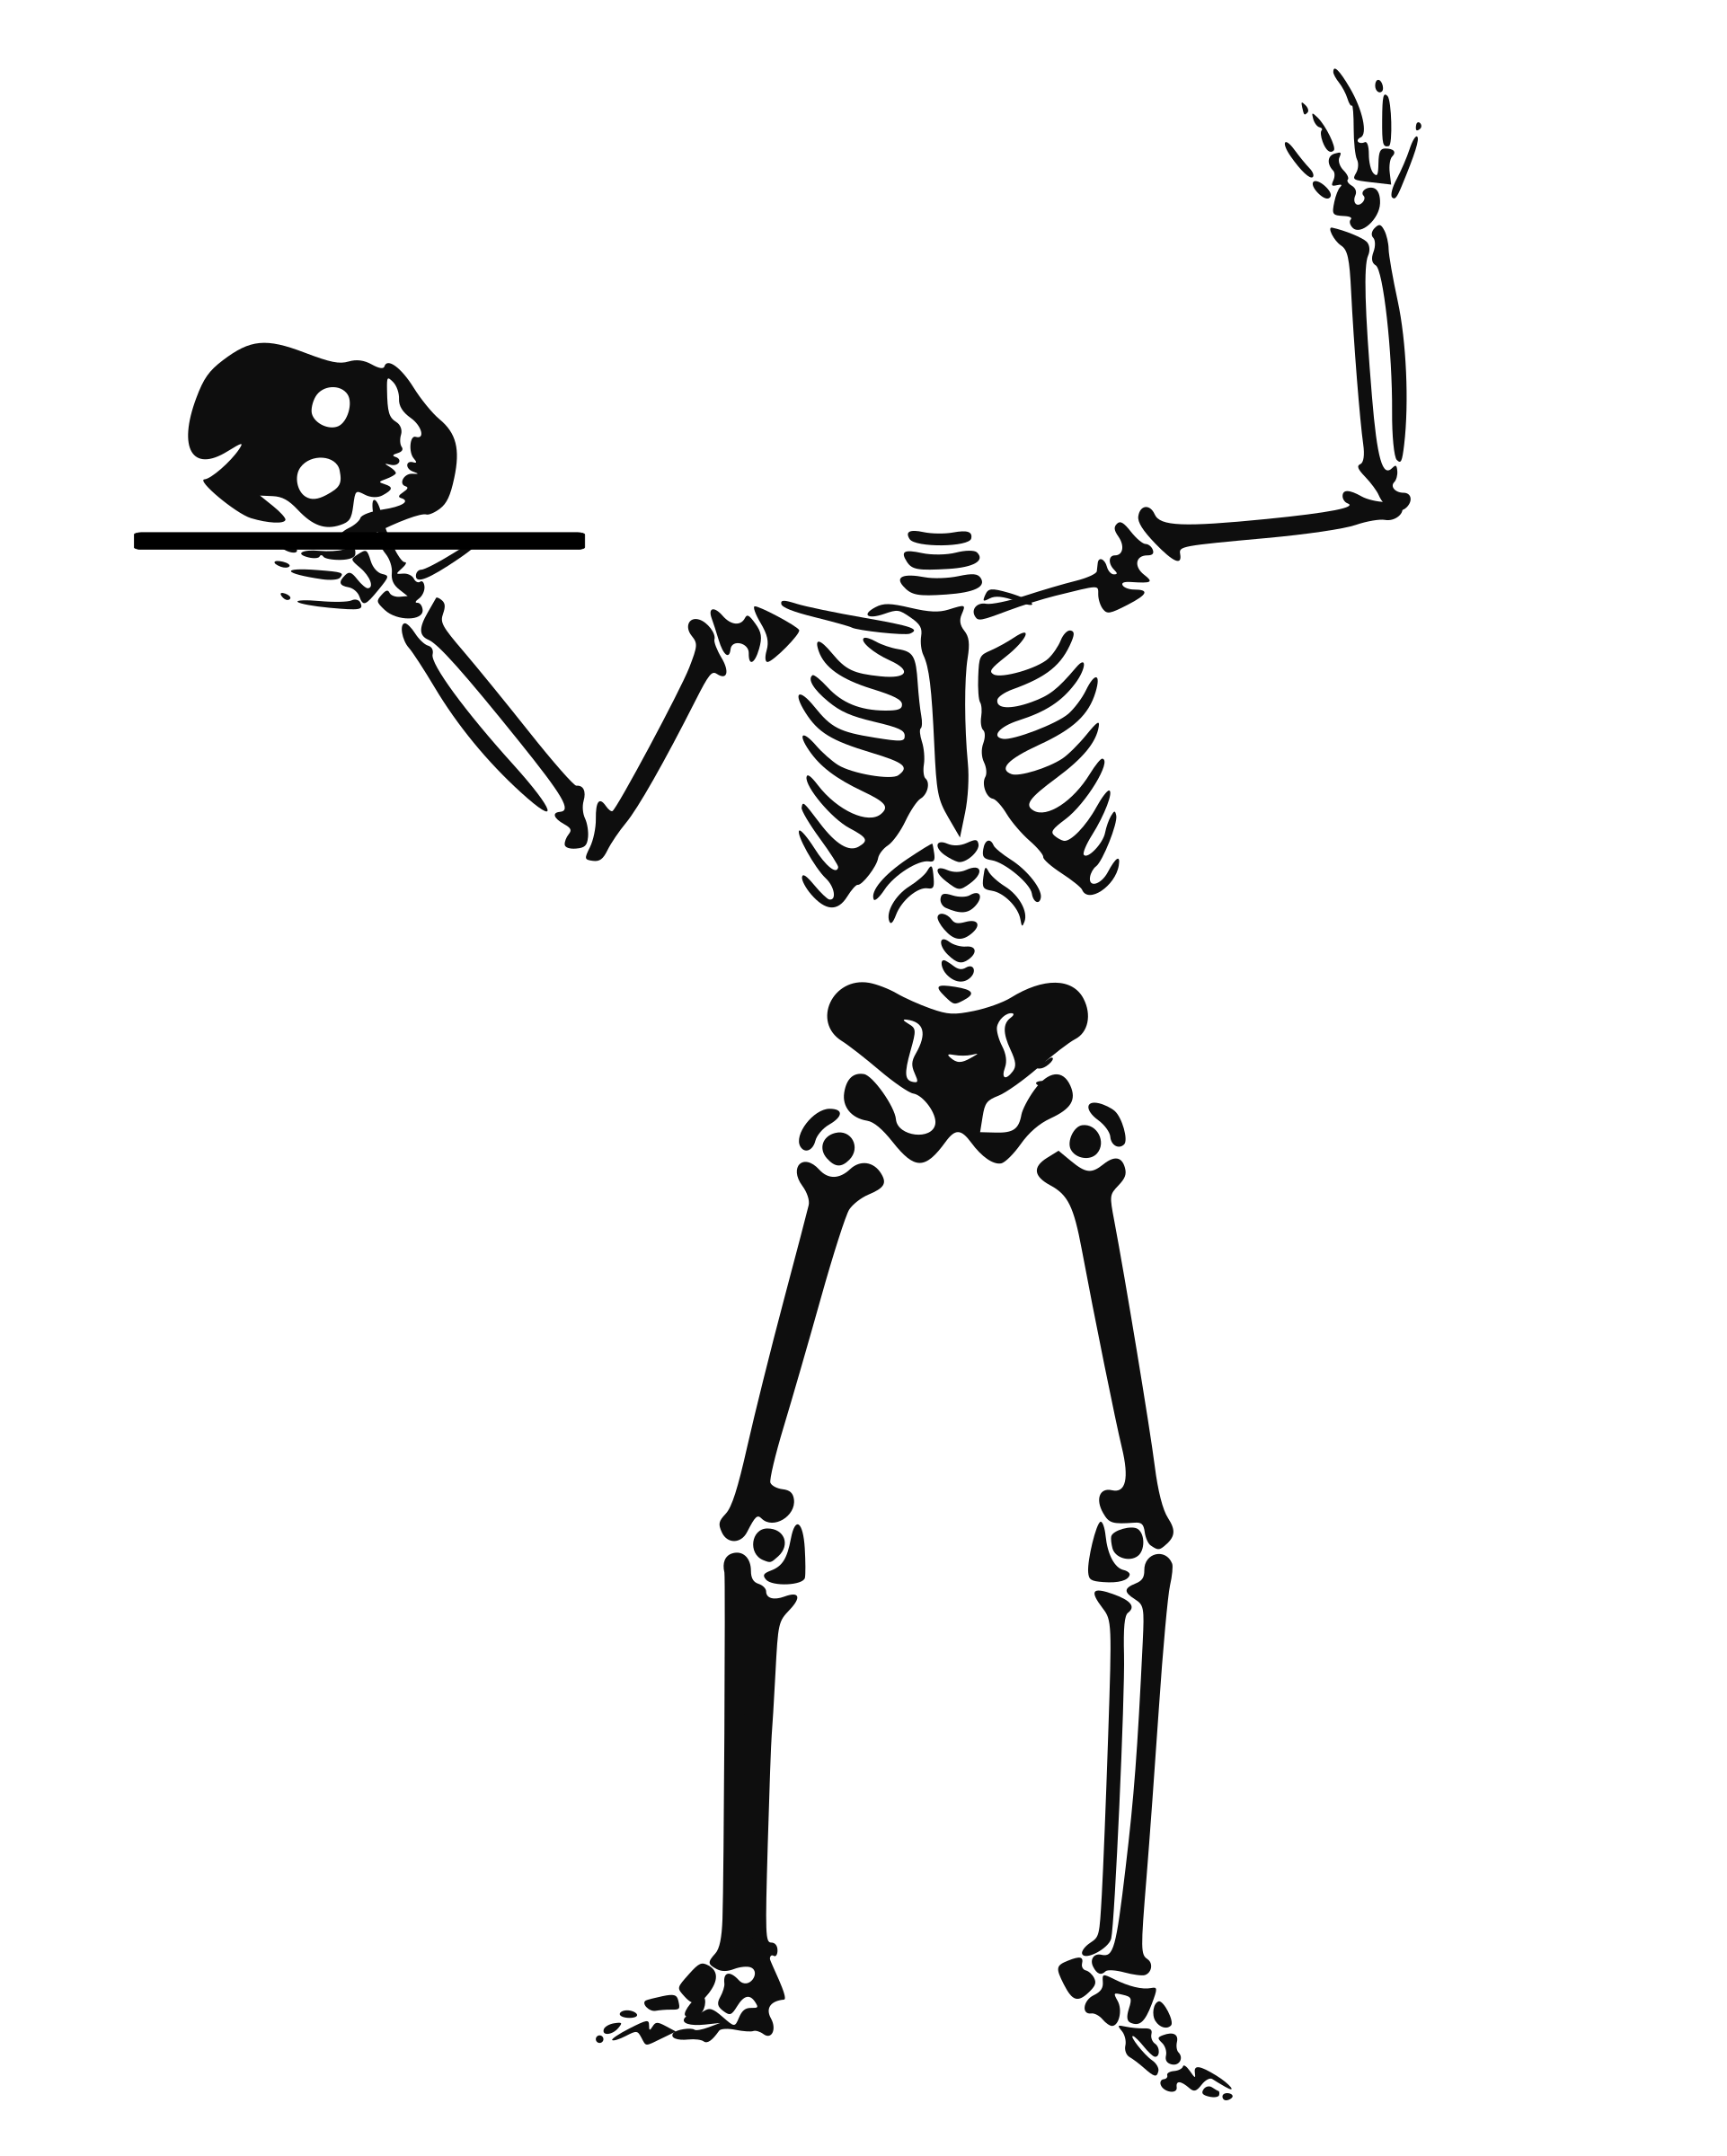 Big image png. Clipart halloween ghost